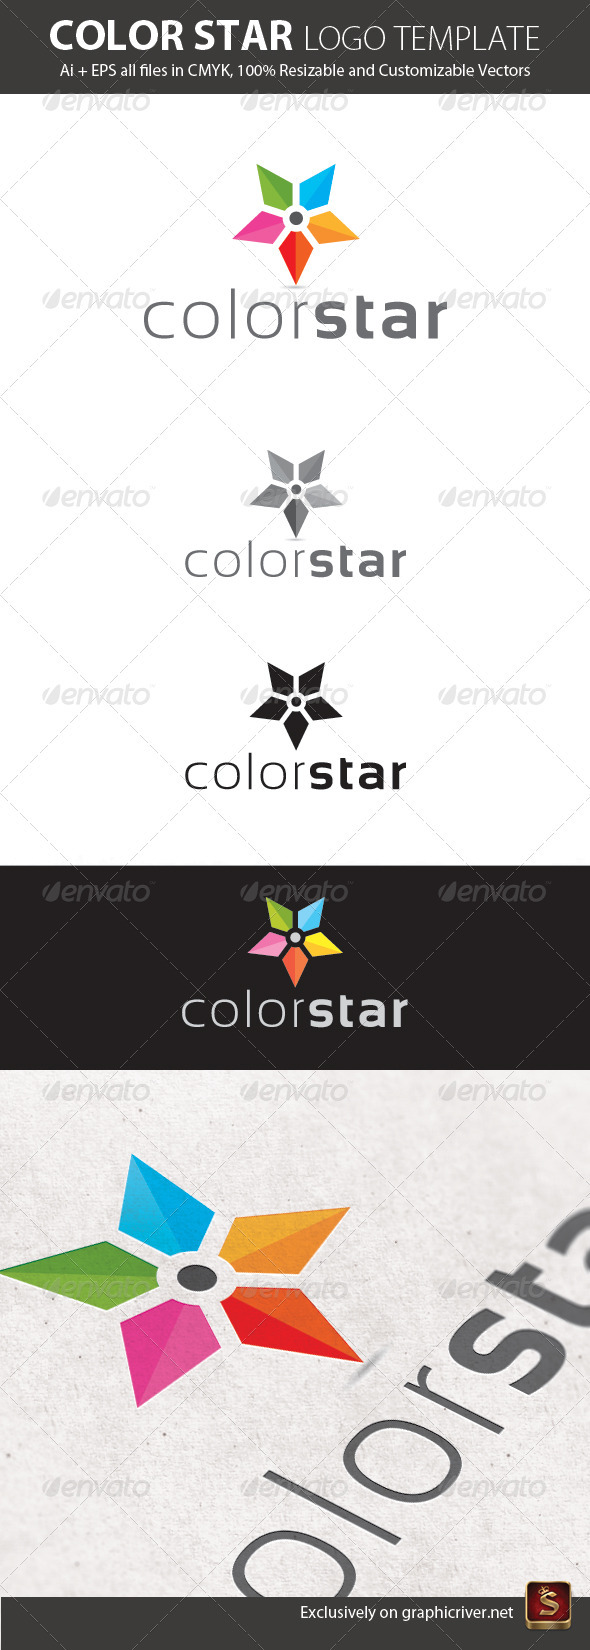 Color Star Logo Template - Vector Abstract